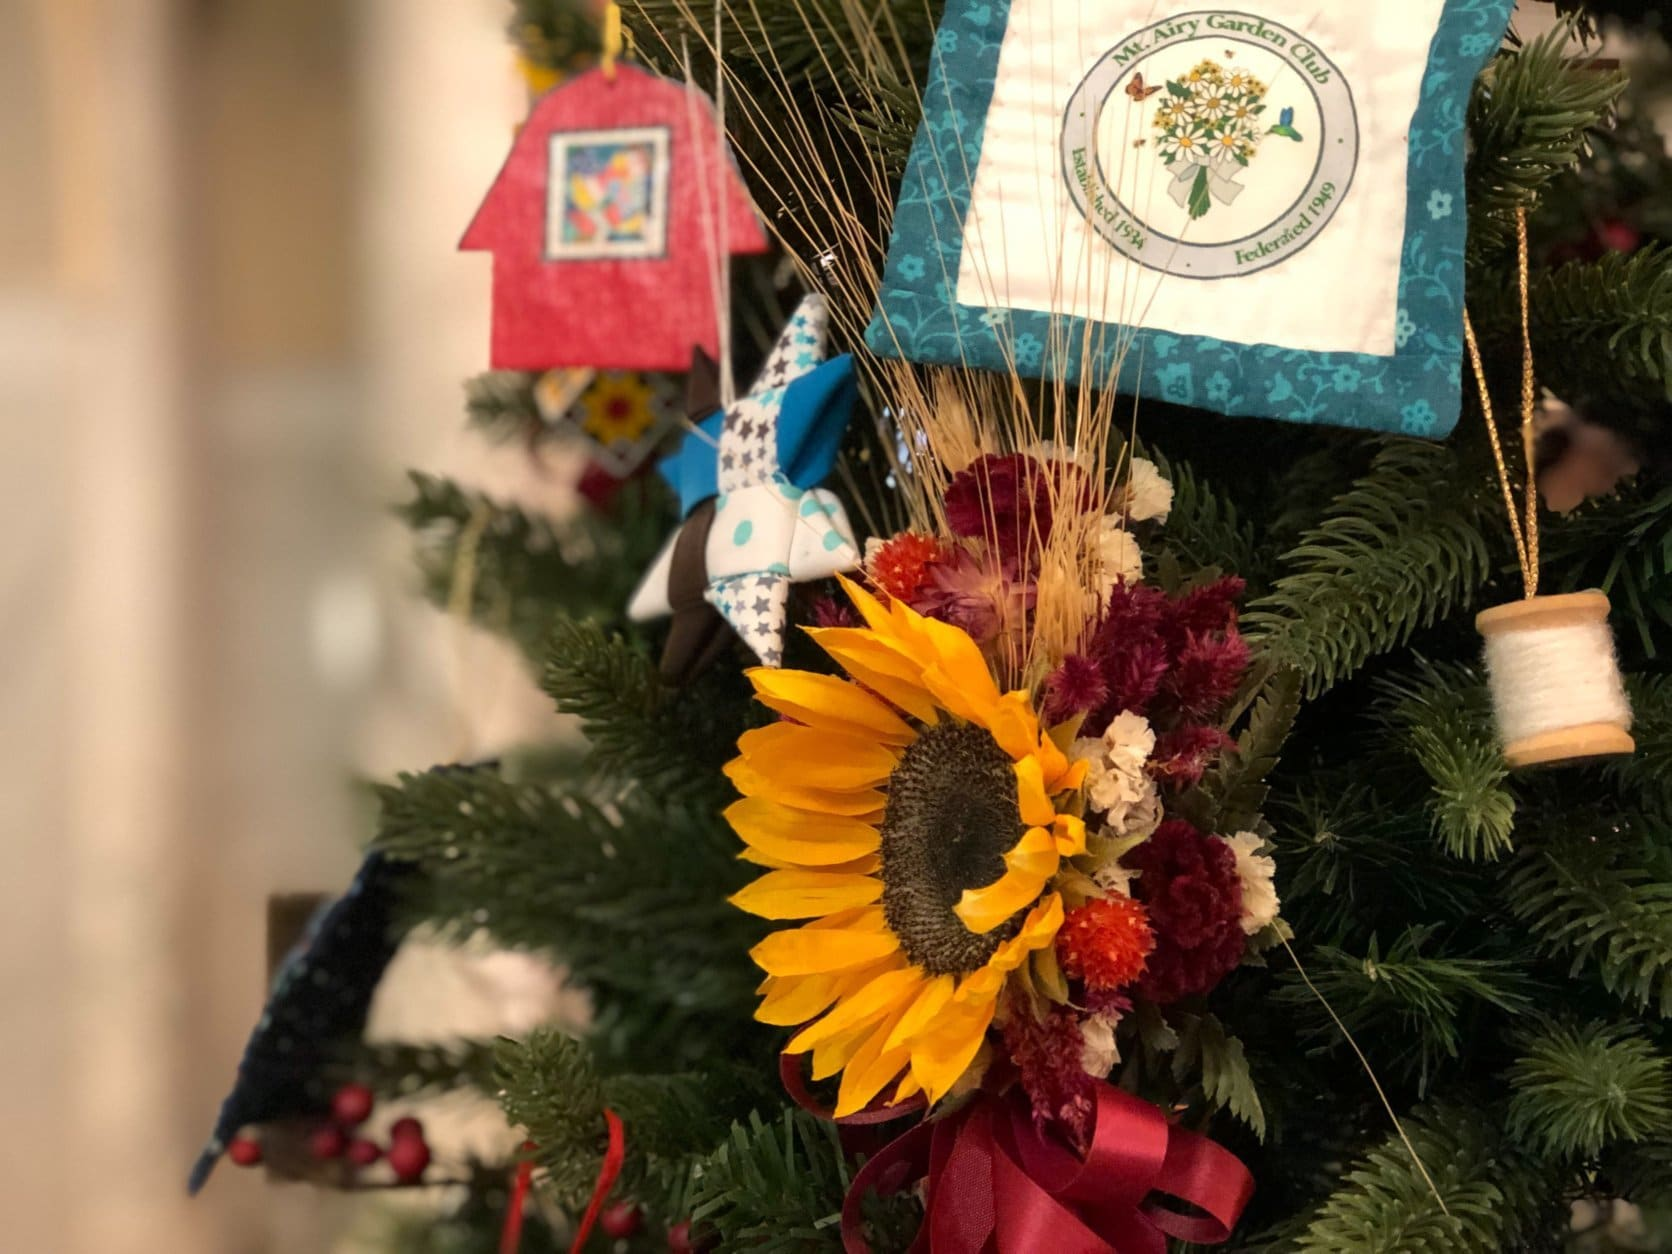 This tree deocorated by the Mt. Airy Garden Club features some of the symbols of Maryland's rural heritage. The tree is part of a display on view at Maryland's State House in Annapolis, Md., through Jan. 3, 2019. (WTOP/Kate Ryan)